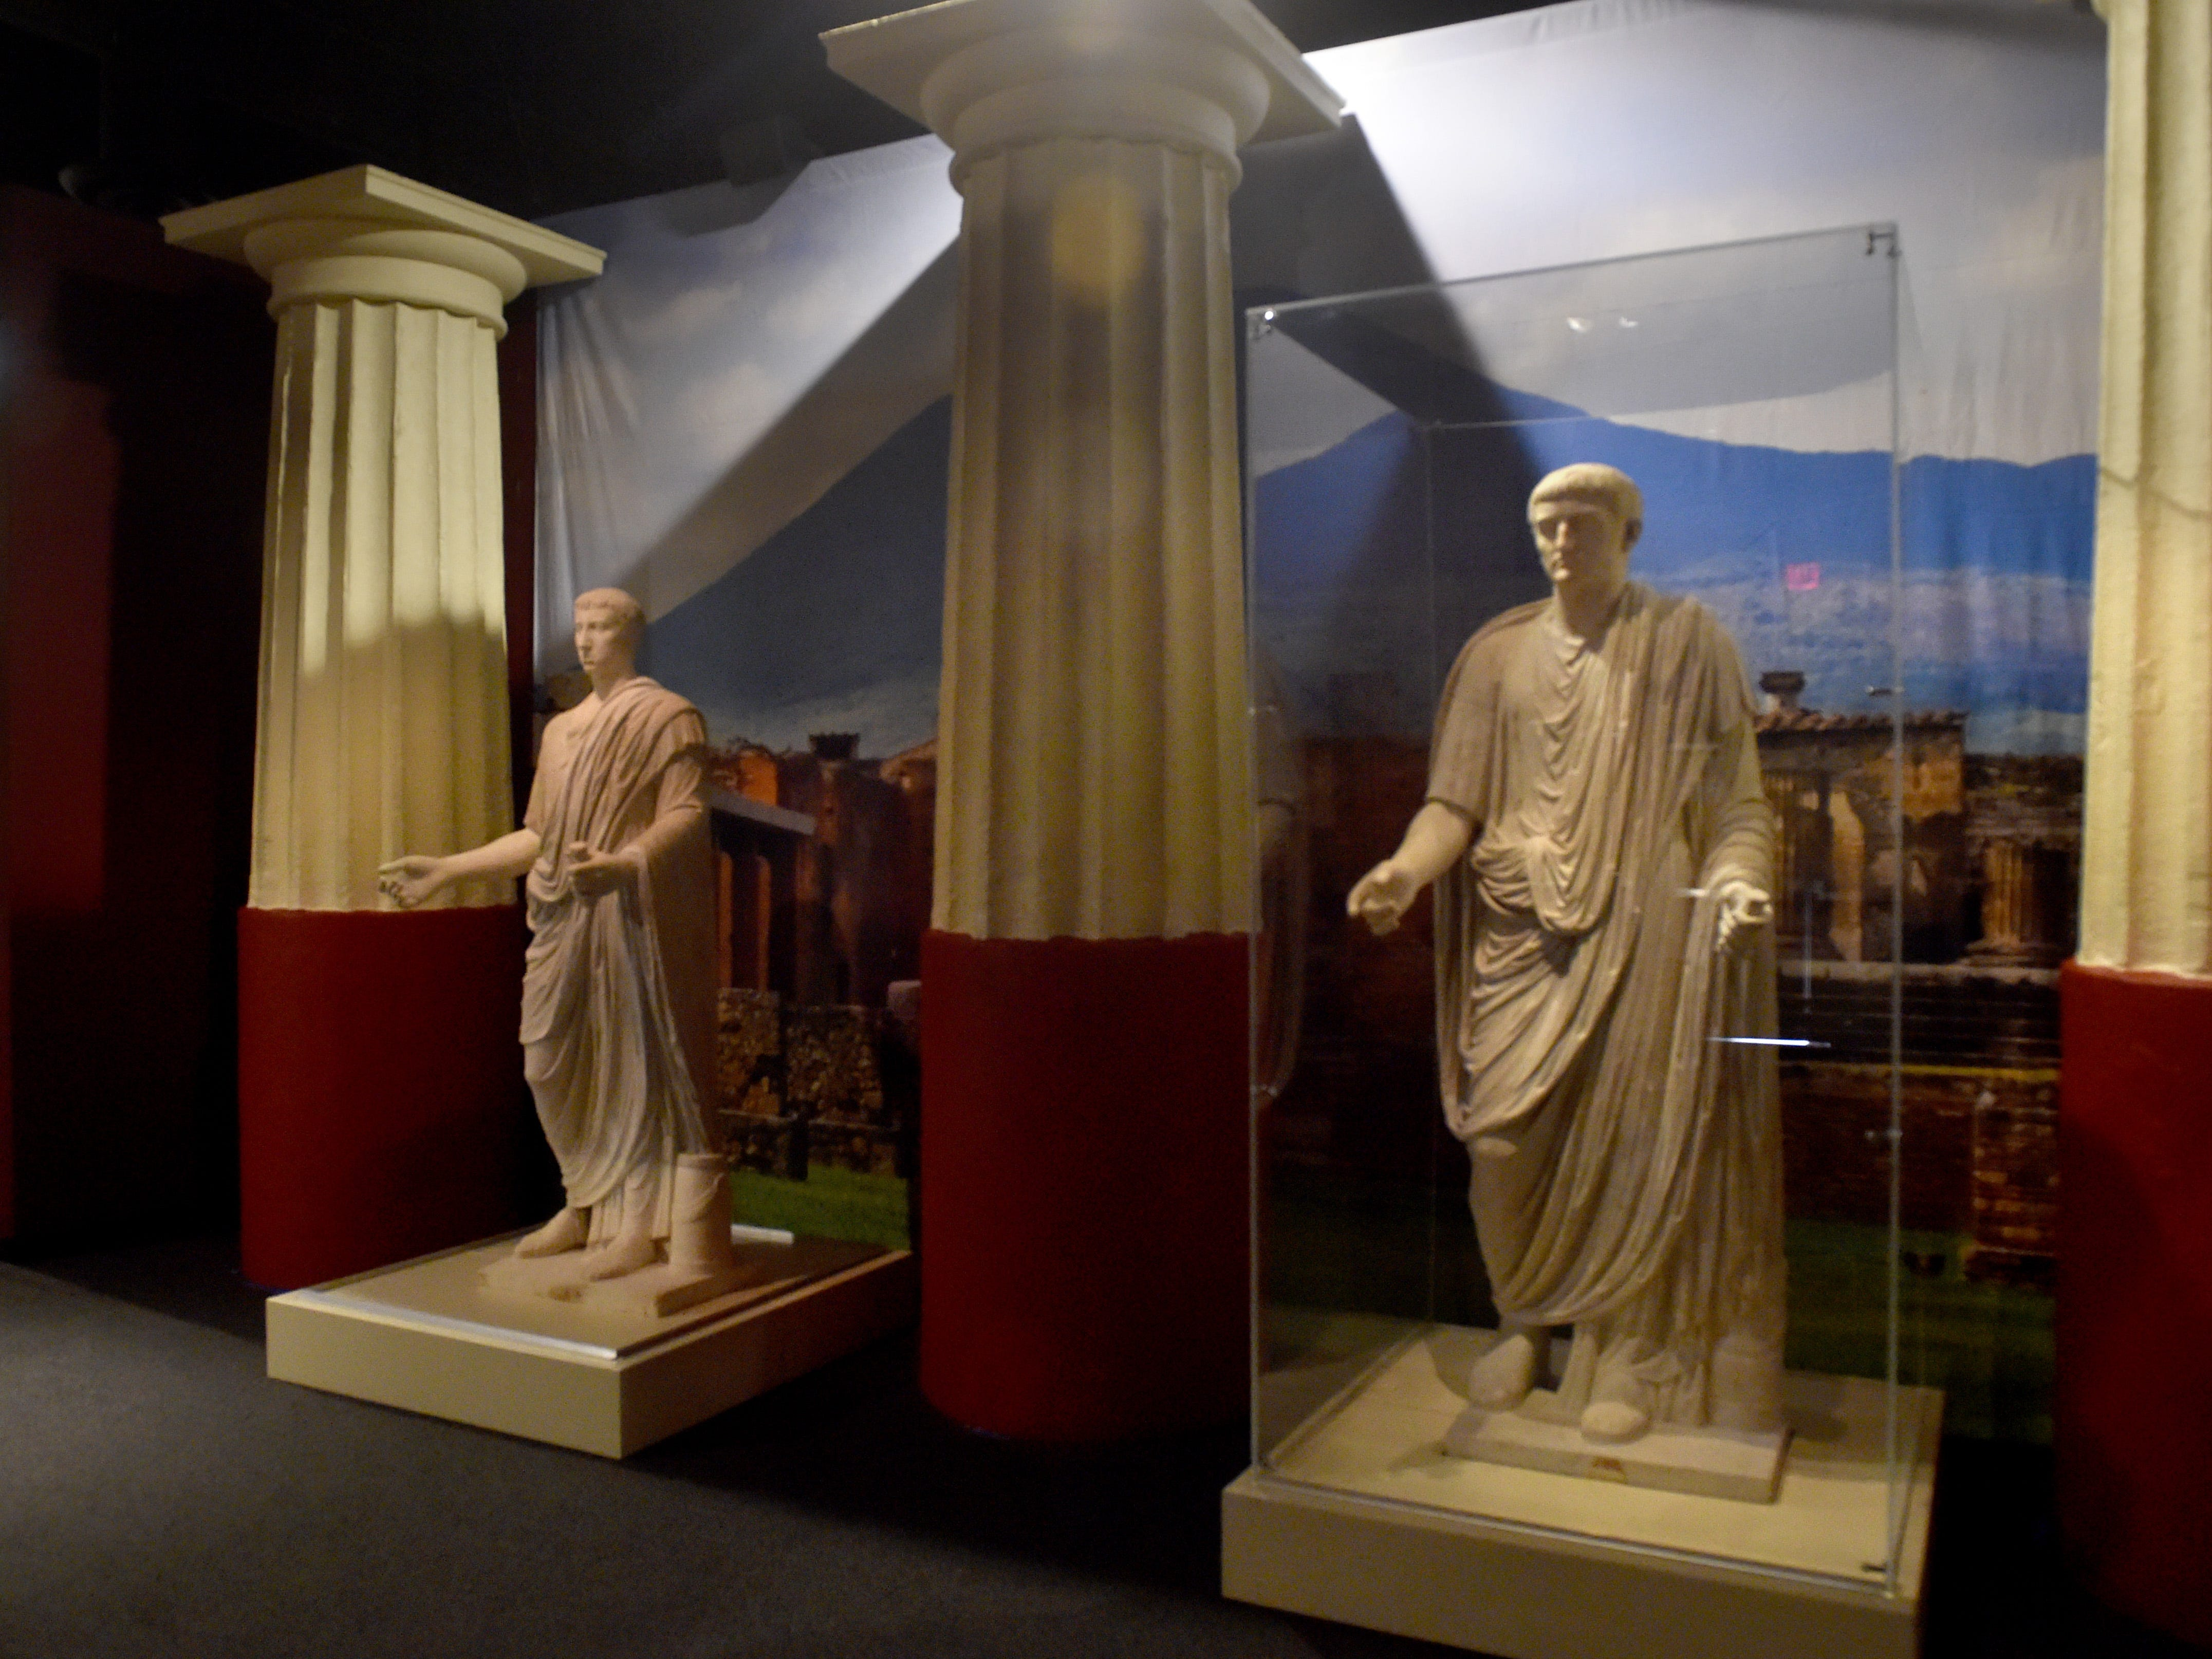 Two large marble statues tower over a room in the Pompeii exhibit at the Ronald Reagan Presidential Library & Museum in Simi Valley.